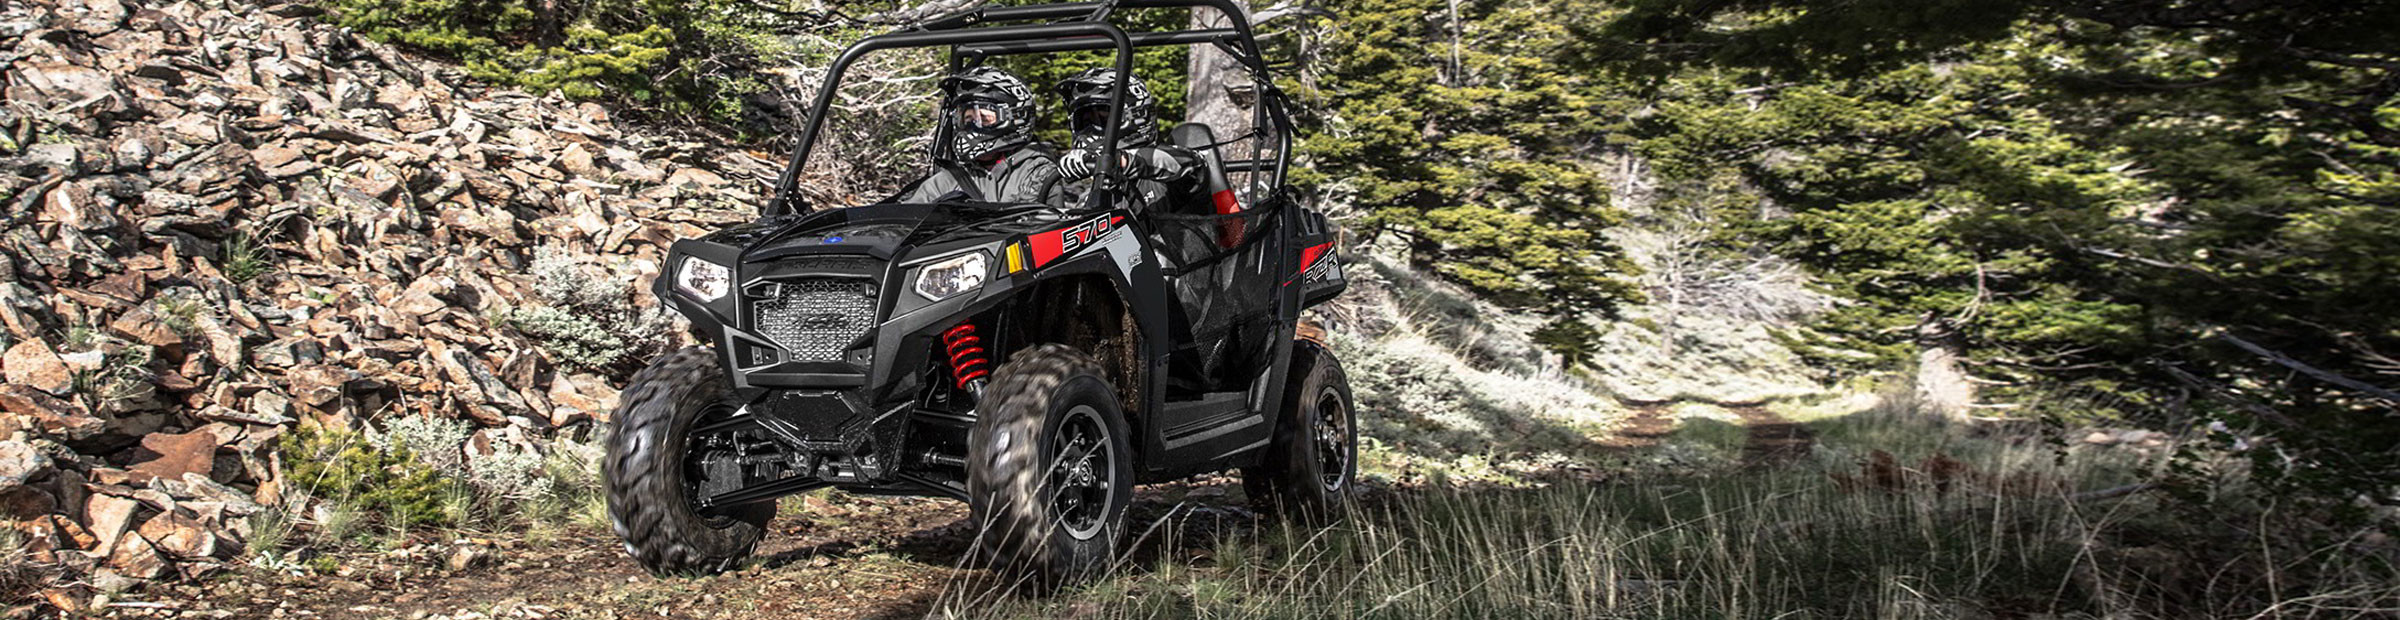 2021 Polaris RZR® Collection